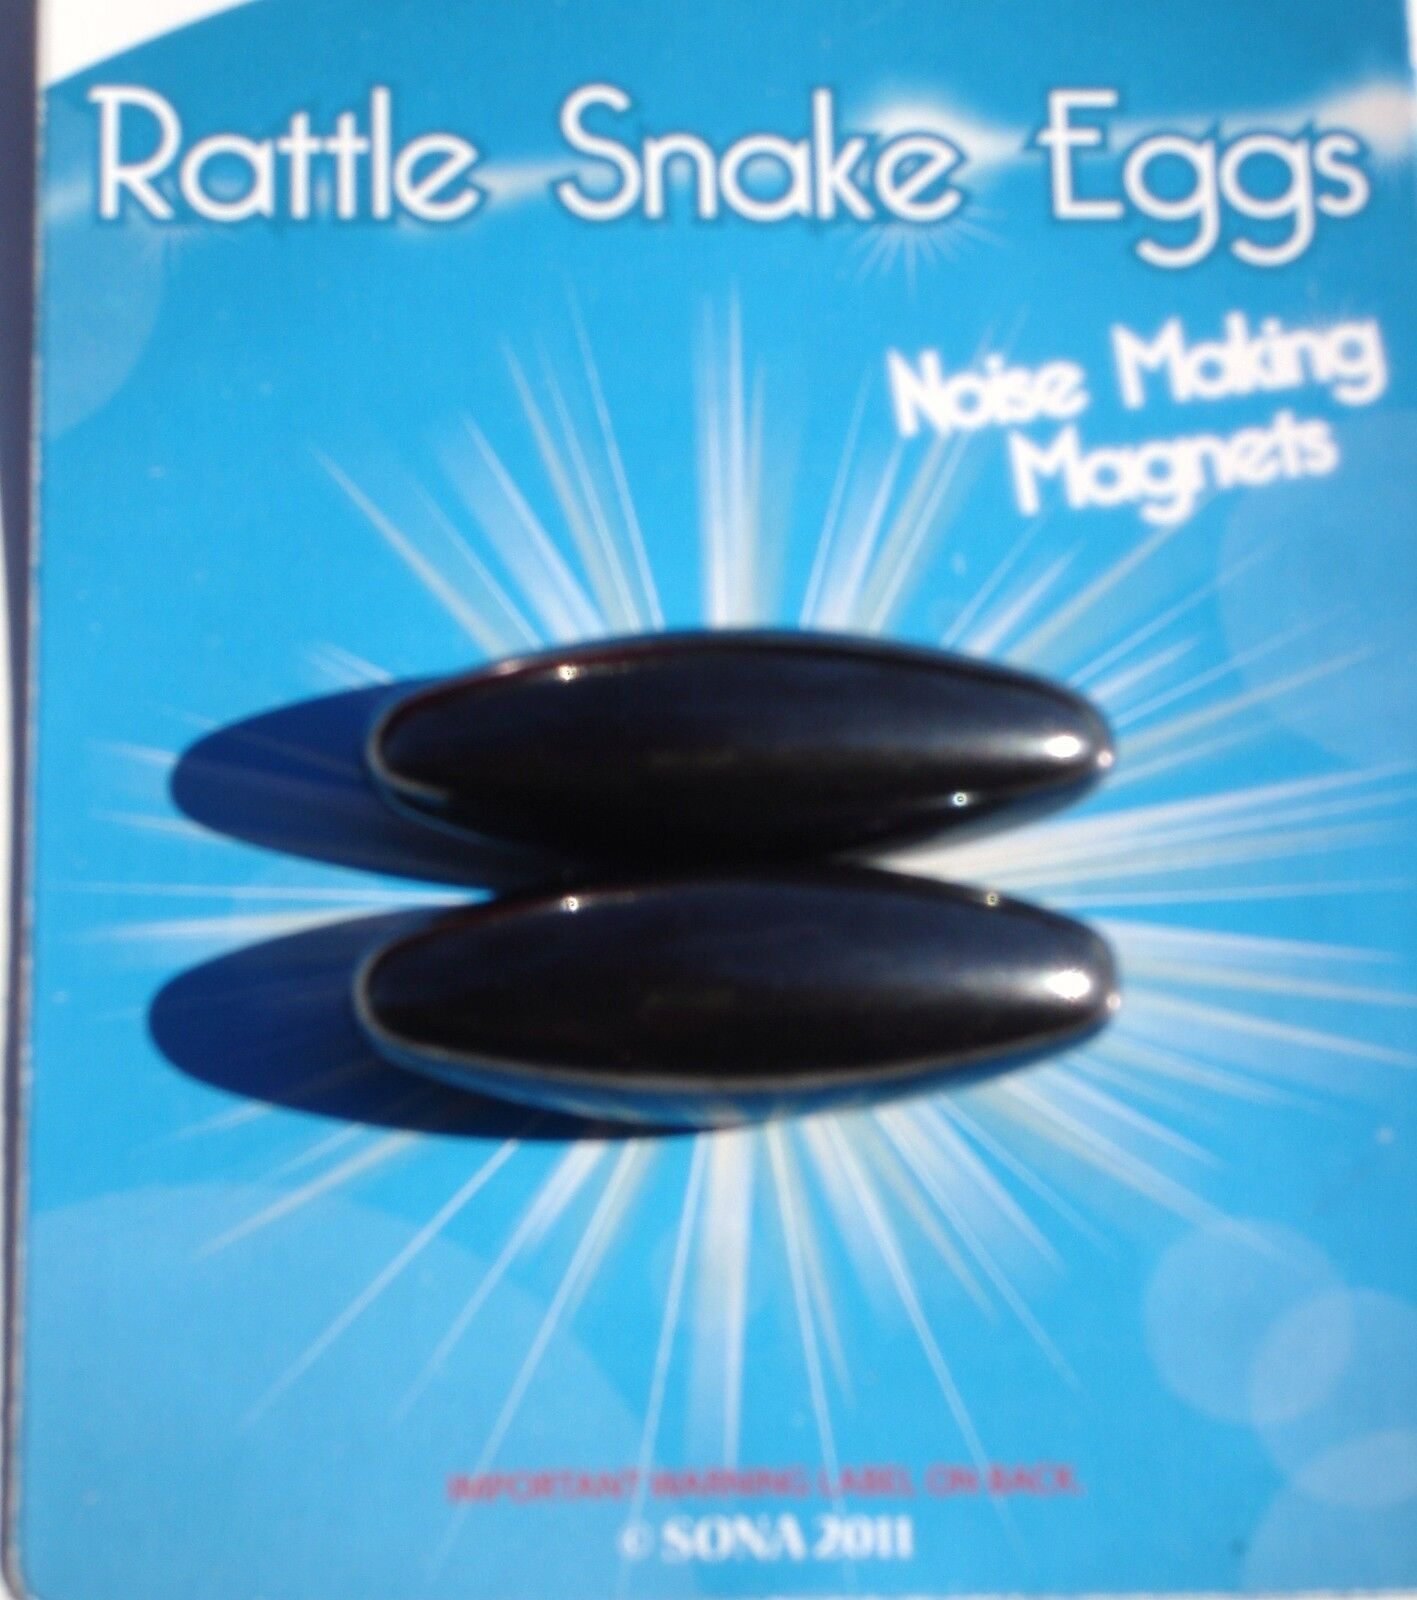 Rattlesnake Eggs ( Lot Of 12 Cards ) Noise Making Magnets Carnivals, Party Toys,